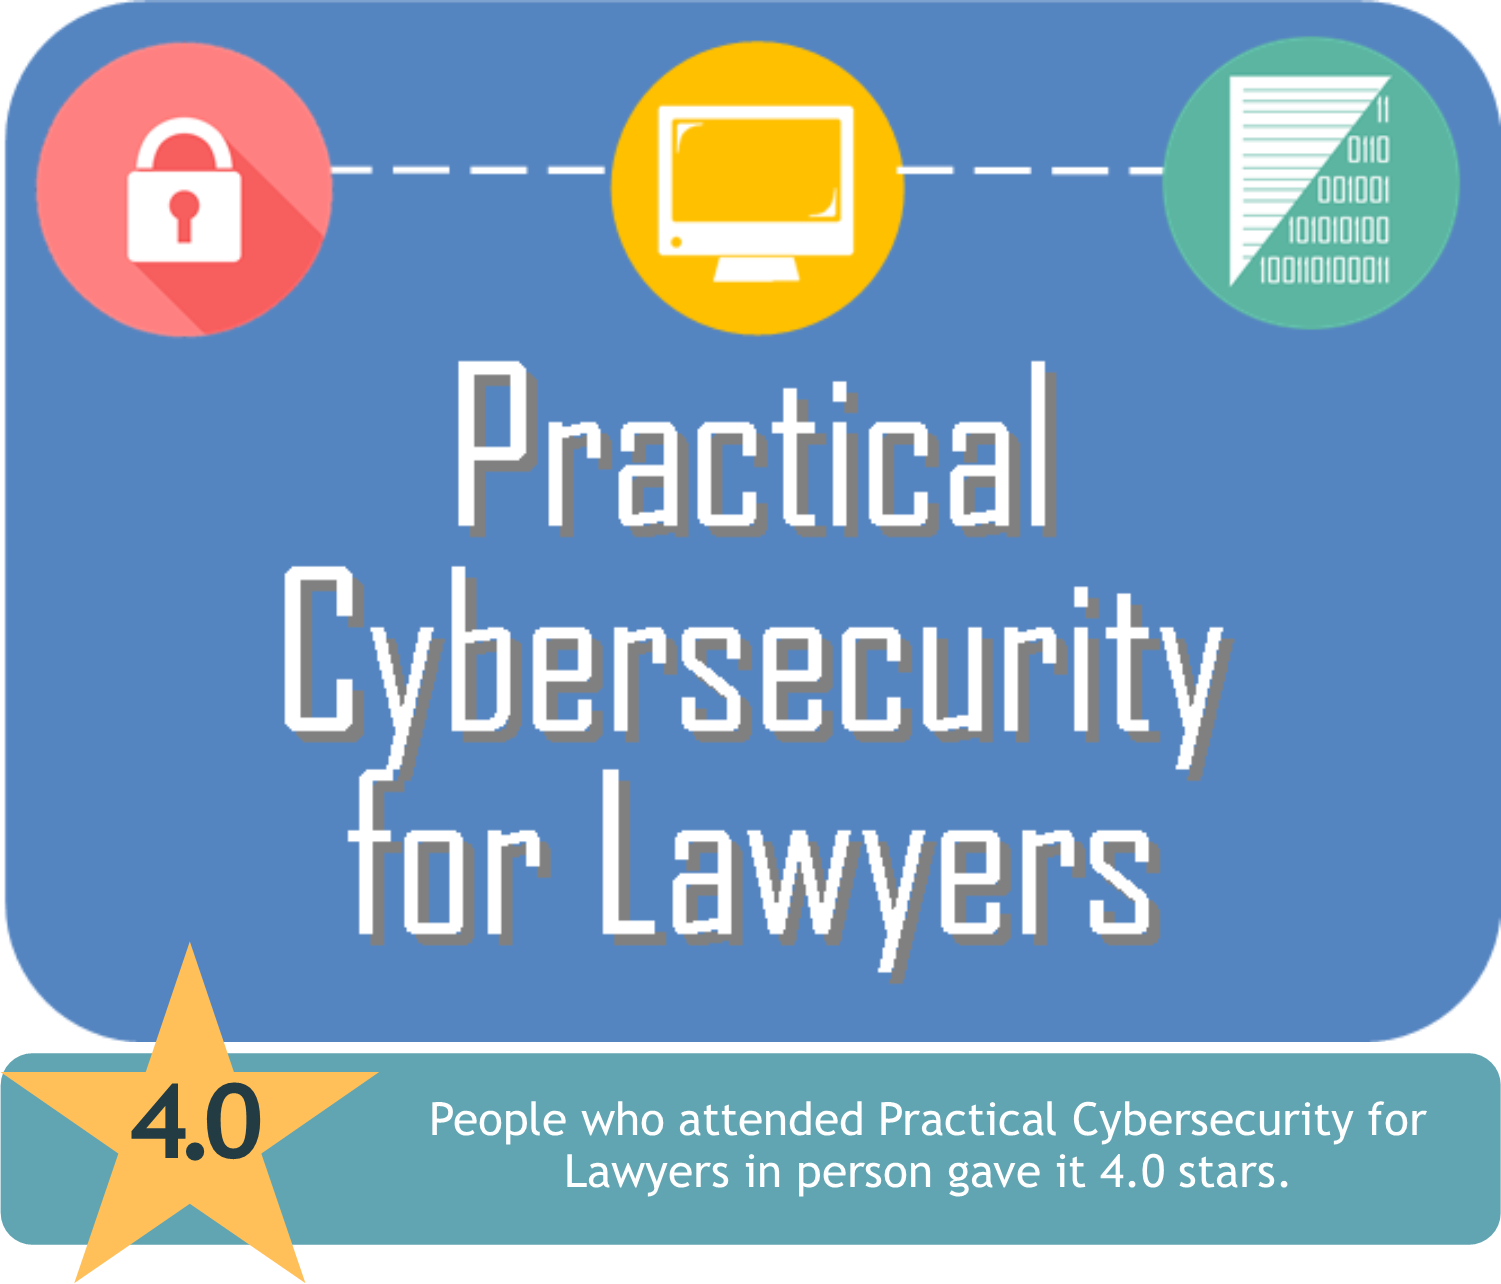 People who attended Practical Cybersecurity for Lawyers in person gave it 4.0 stars.